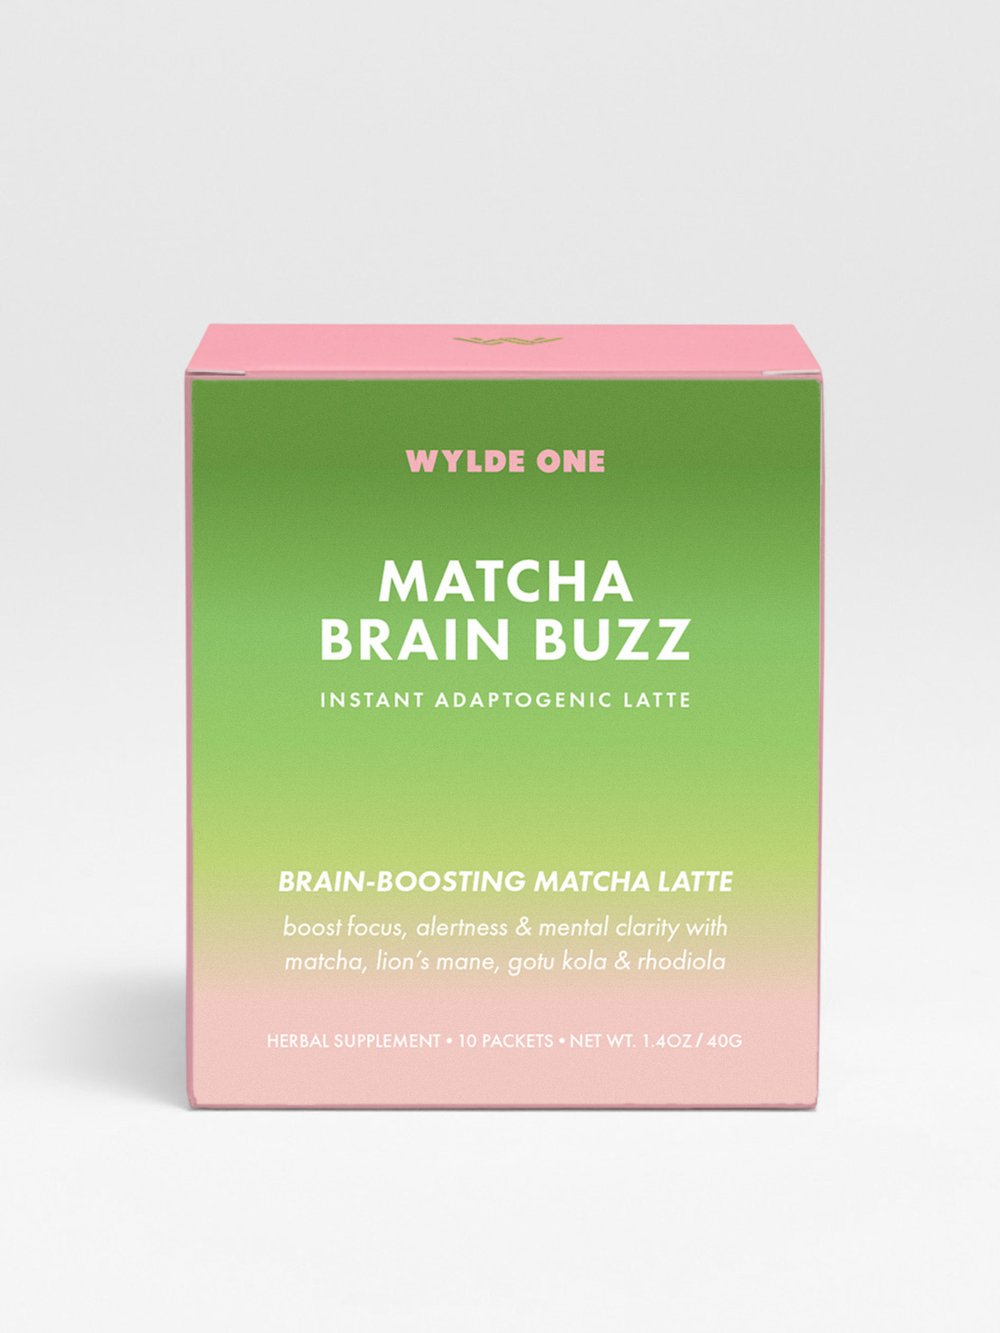 Matcha Brain Buzz l WYLDE ONE